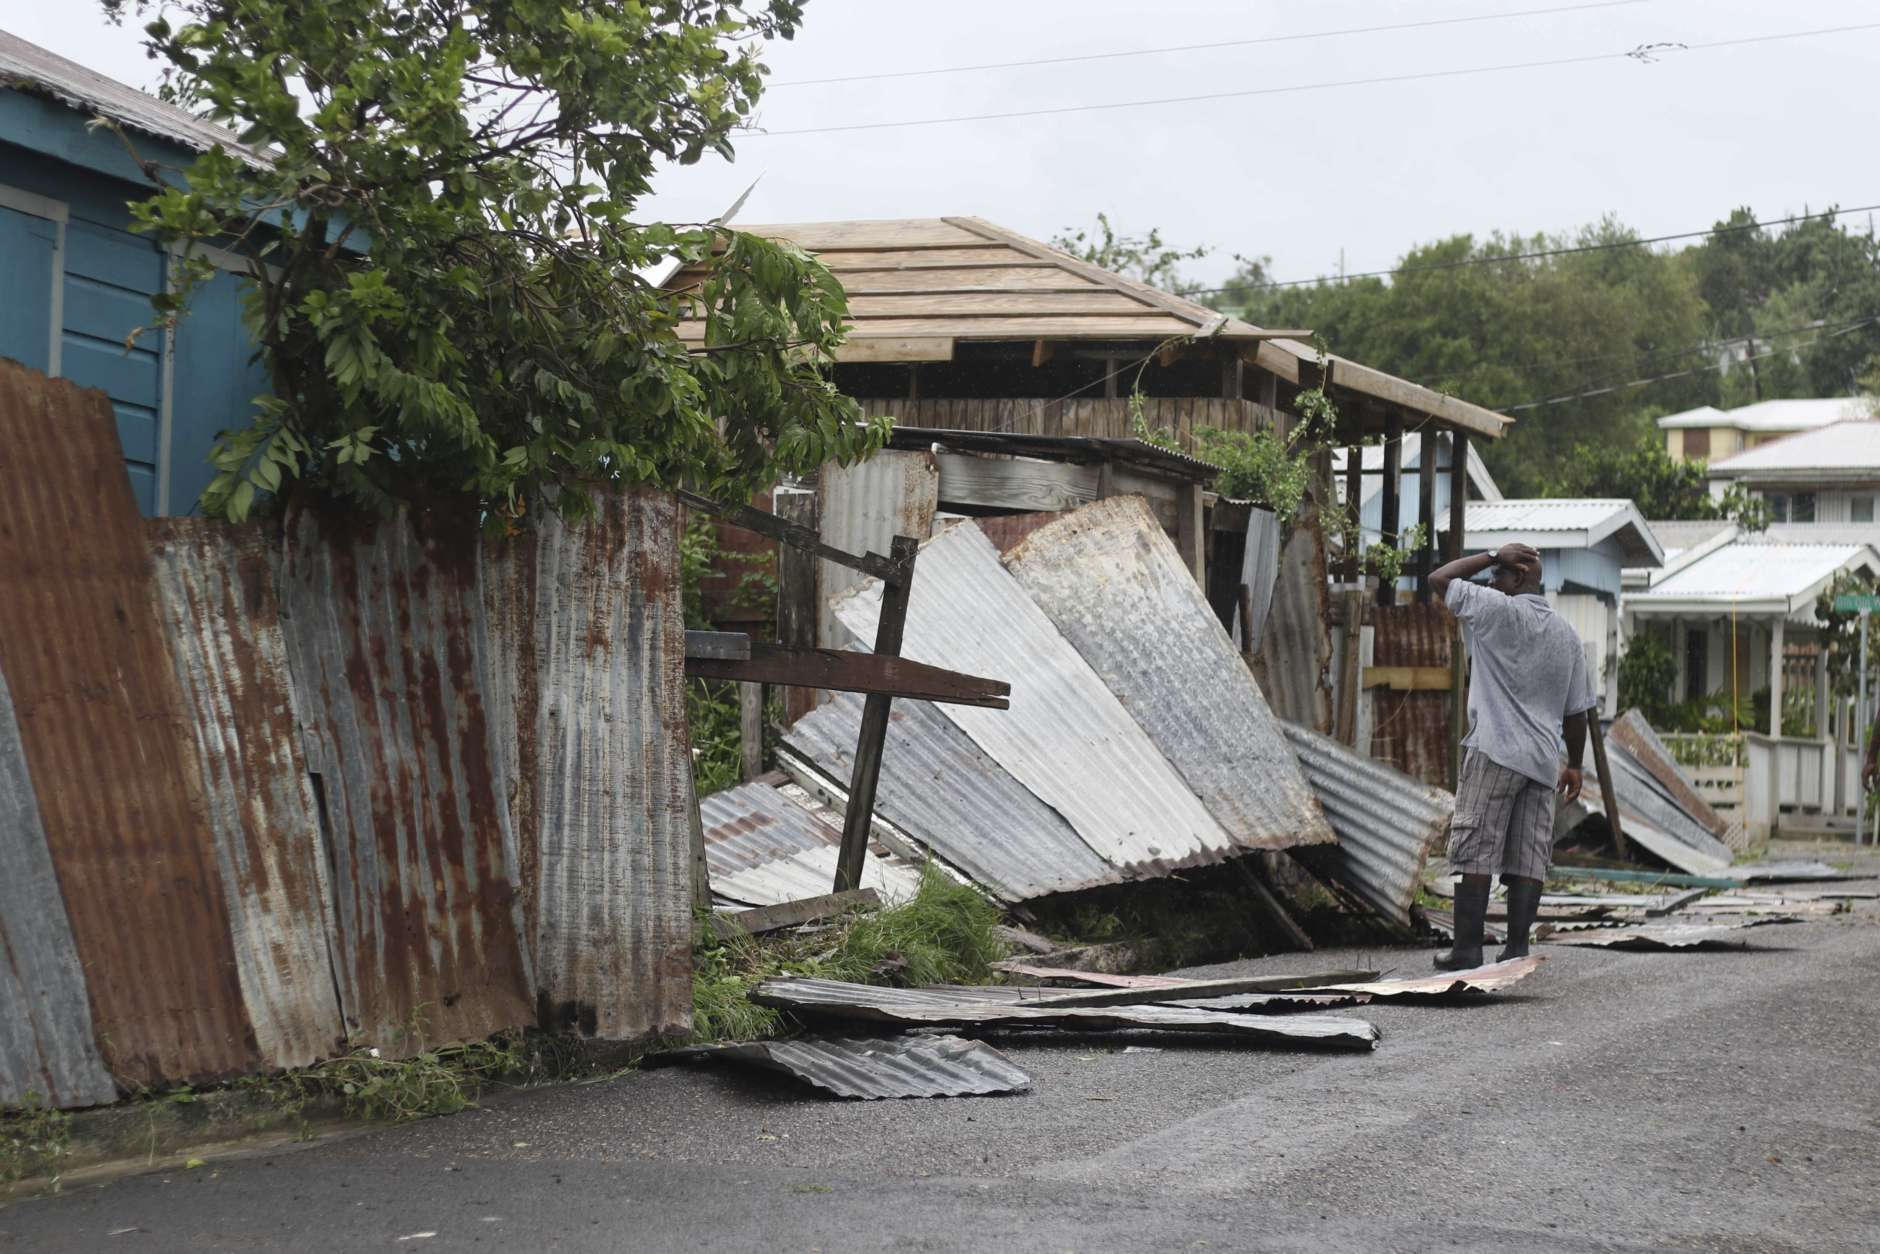 A man surveys the wreckage on his property after the passing of Hurricane Irma, in St. John's, Antigua and Barbuda, Wednesday, Sept. 6, 2017. Heavy rain and 185-mph winds lashed the Virgin Islands and Puerto Rico's northeast coast as Irma, the strongest Atlantic Ocean hurricane ever measured, roared through Caribbean islands on its way to a possible hit on South Florida. (AP Photo/Johnny Jno-Baptiste)